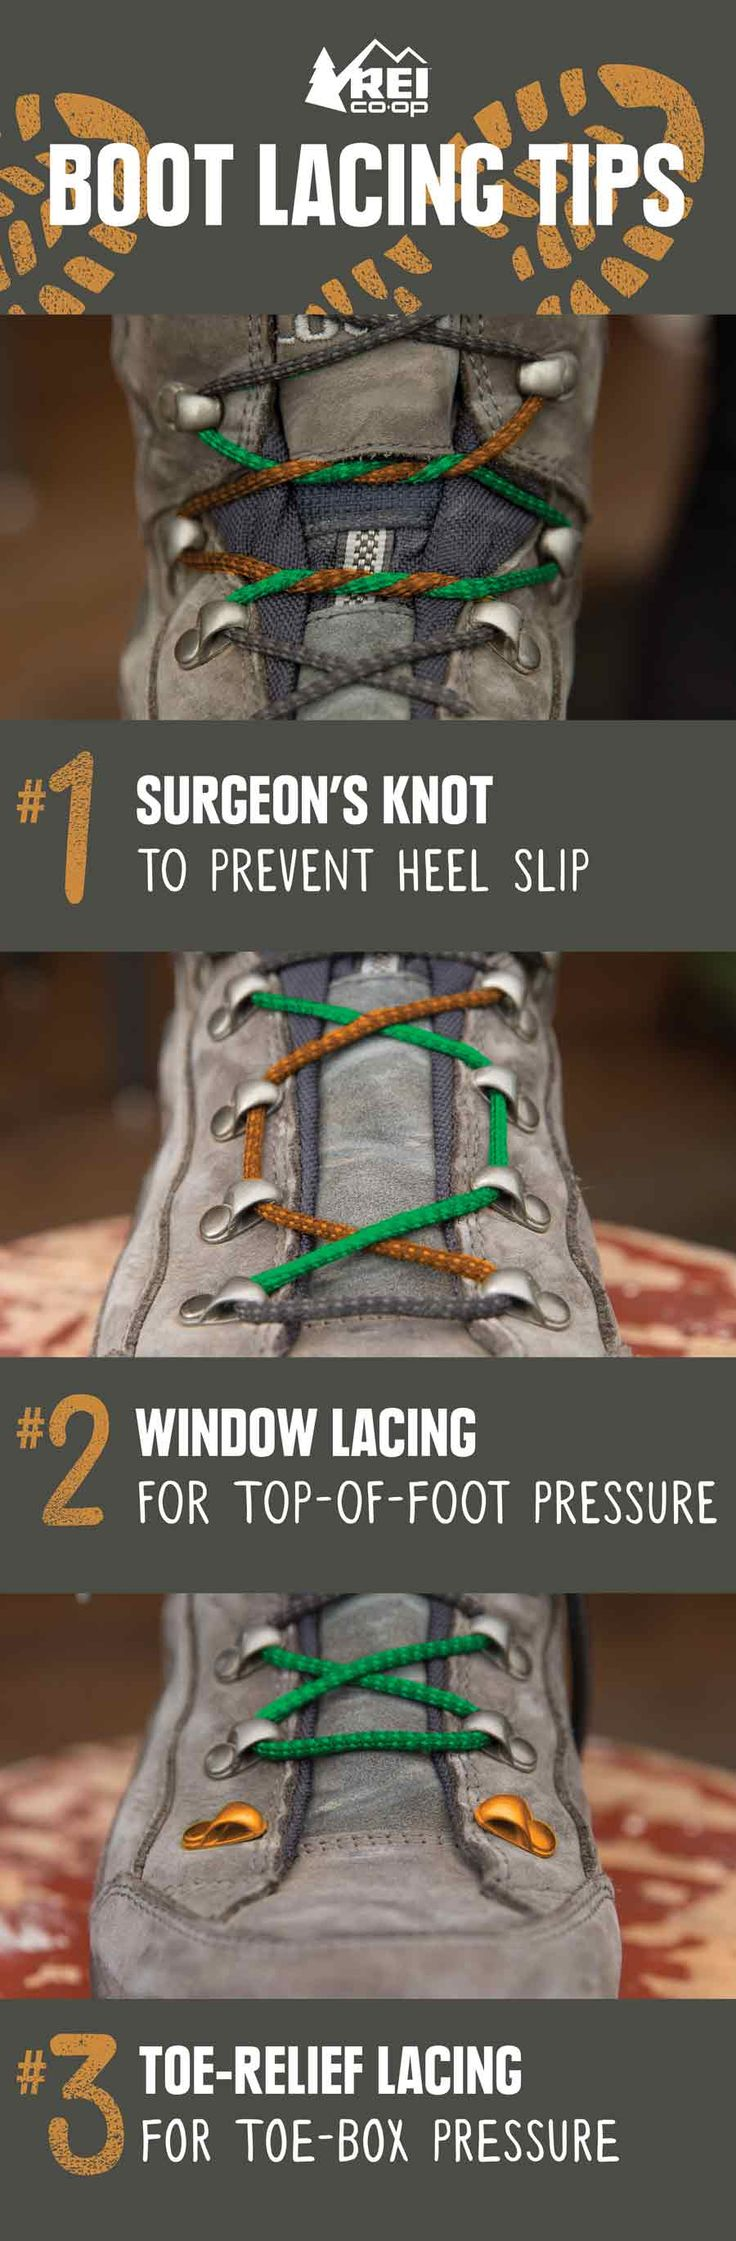 REI Expert Advice: How to Lace Hiking Boots - Three ways to lace your boots to help relieve foot discomfort